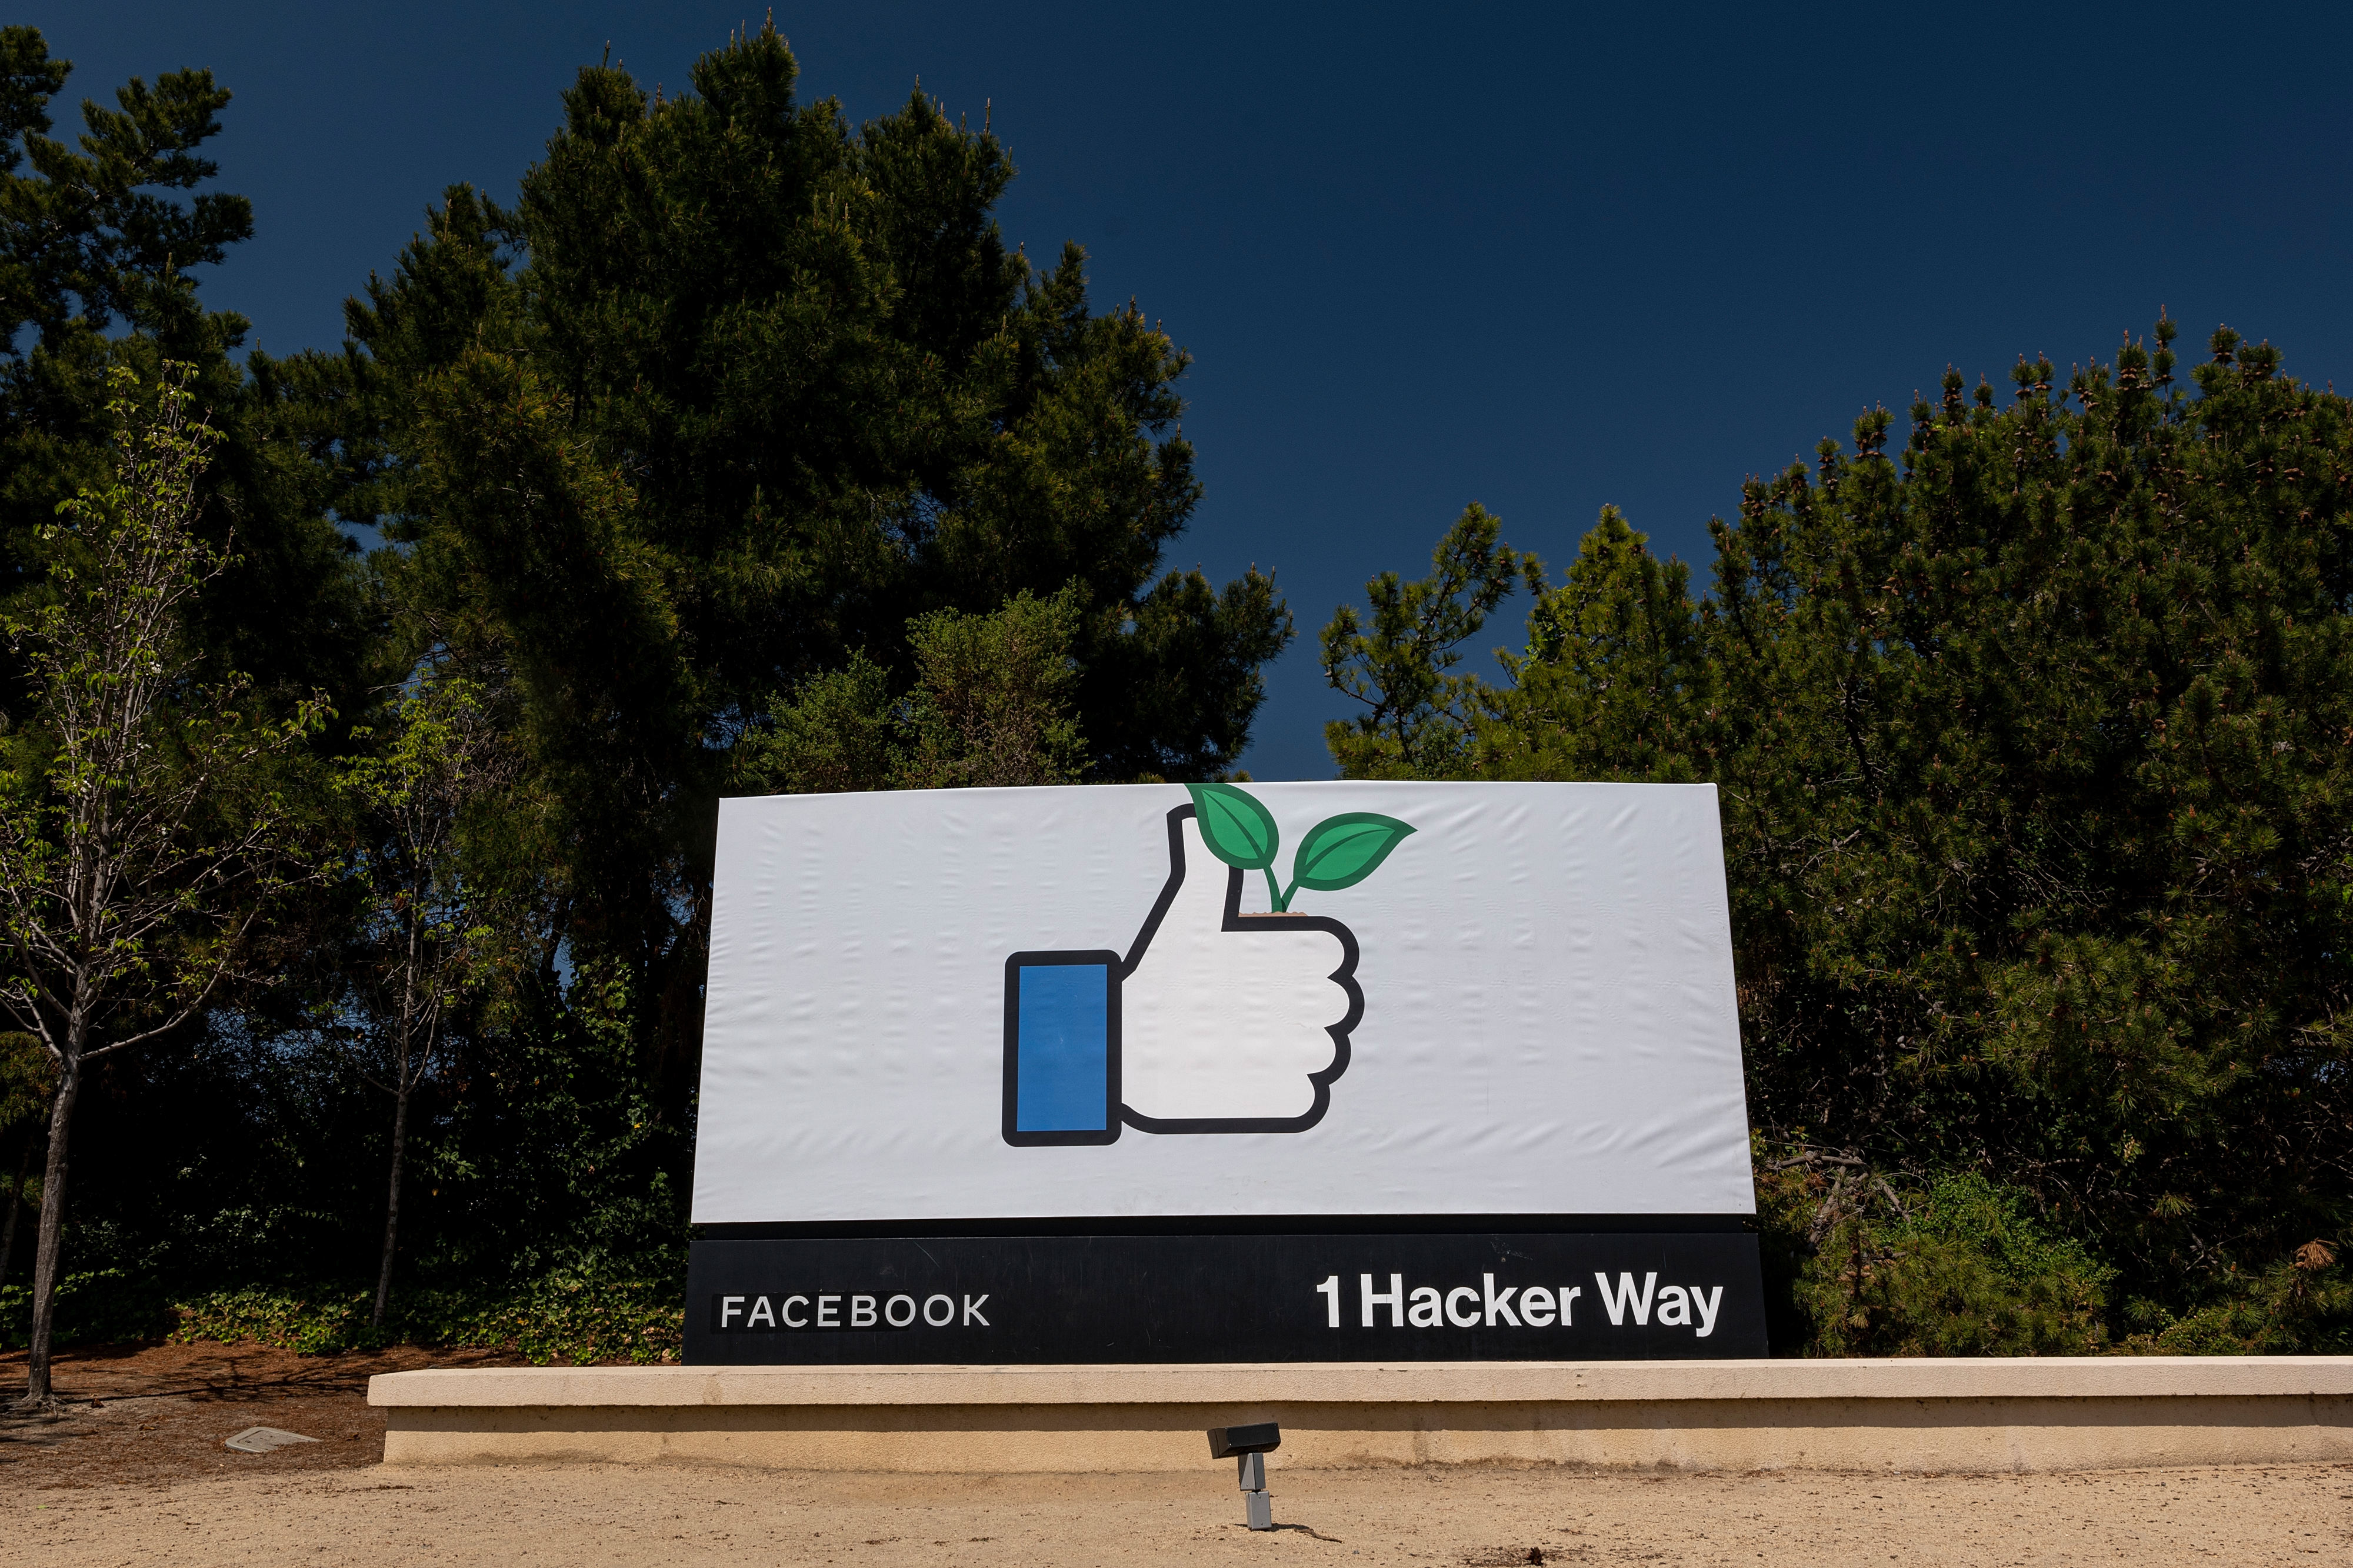 The Facebook sign at 1 Hacker Way shows a thumbs-up icon holding a plant sprout.